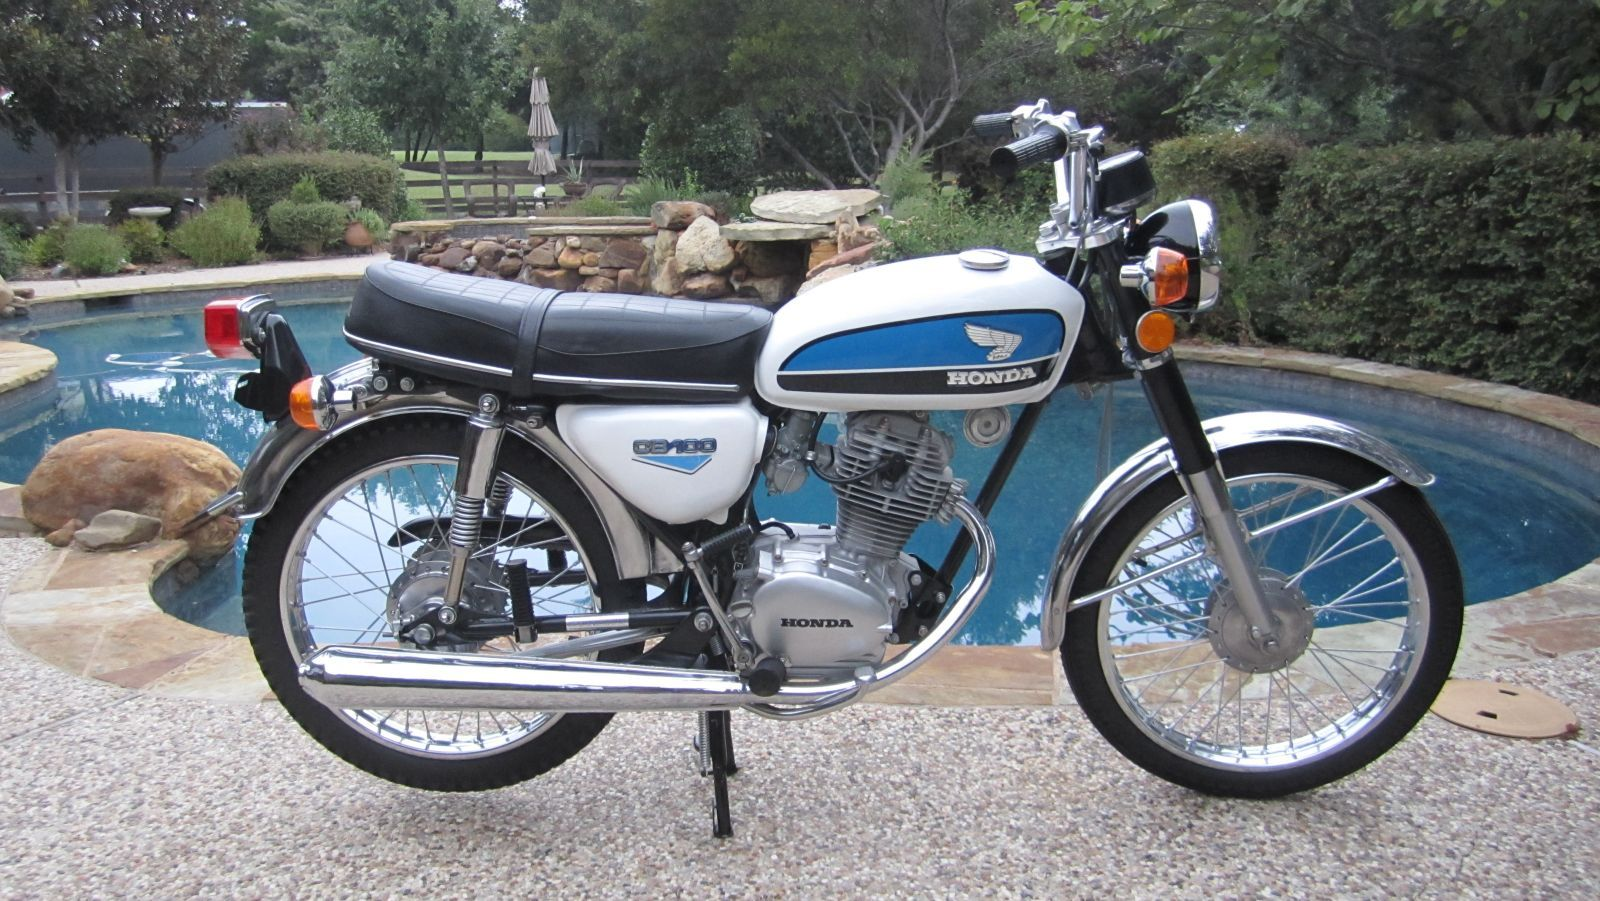 1972 Honda CB100. My very first motorcycle looked exactly